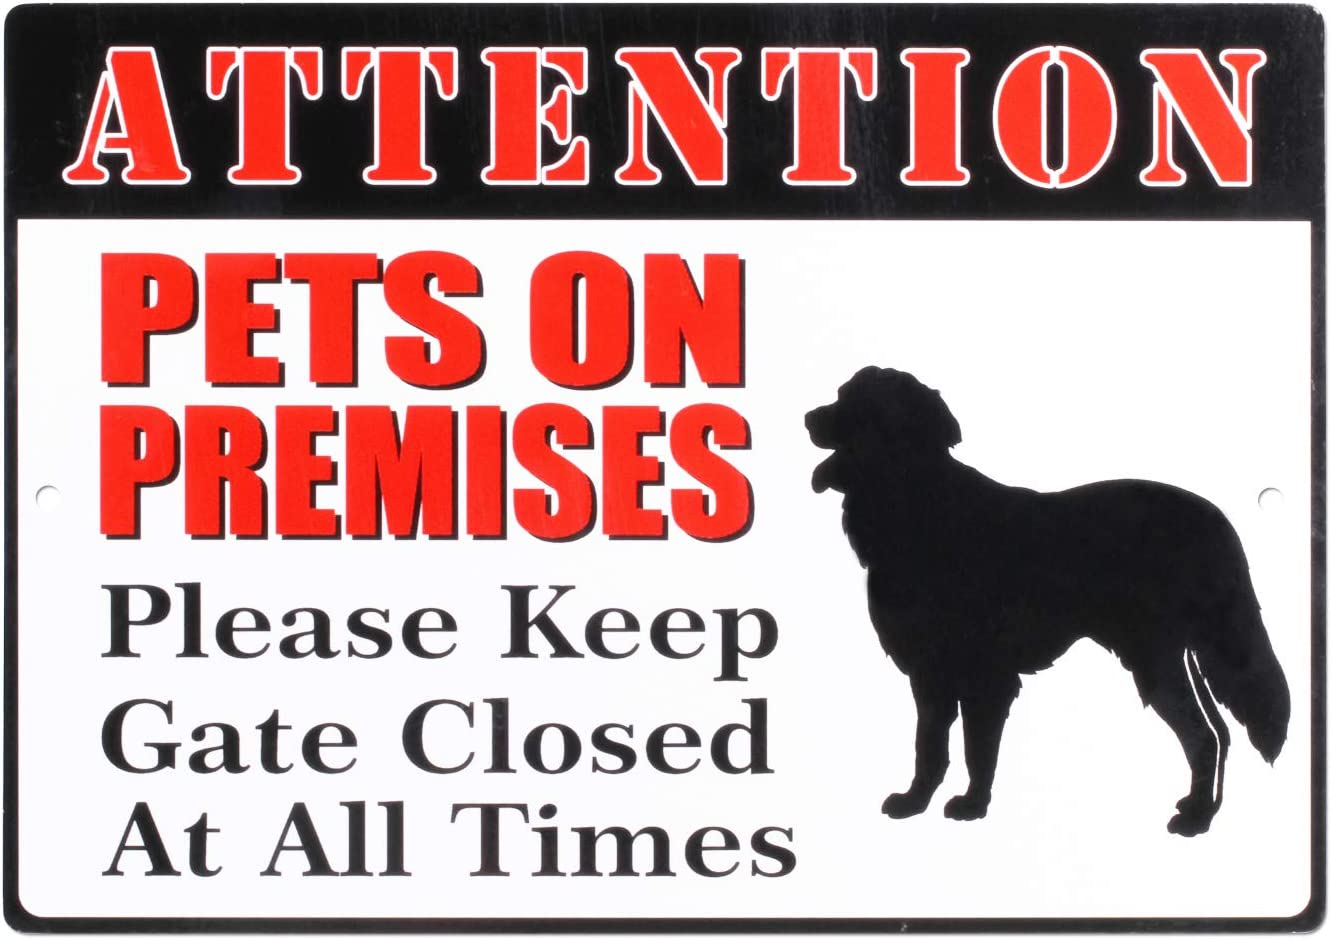 Pets On Premises Please Keep Gate Closed at All Times Sign Reflective 10 X 7 Inch Rust Free 40 Mil Aluminum Sign